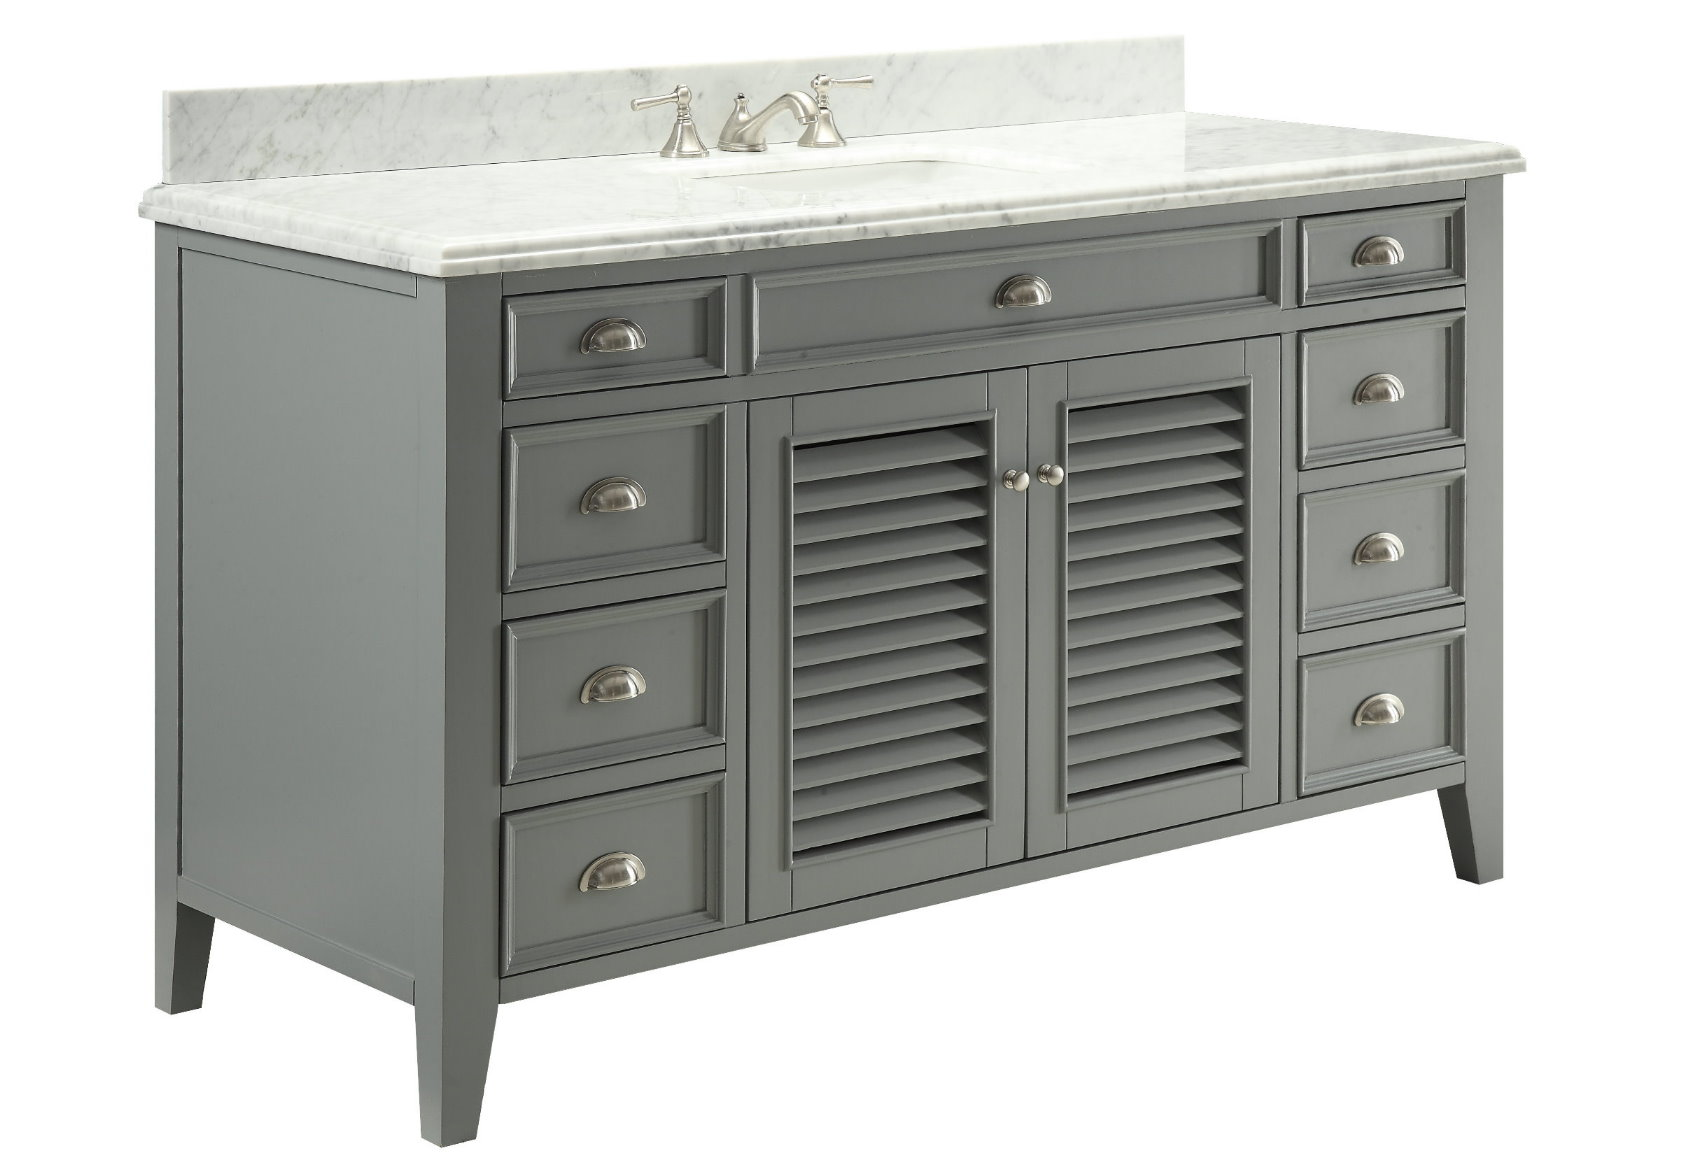 60 inch Gray Bathroom Sink Vanity Italian Marble Carrara